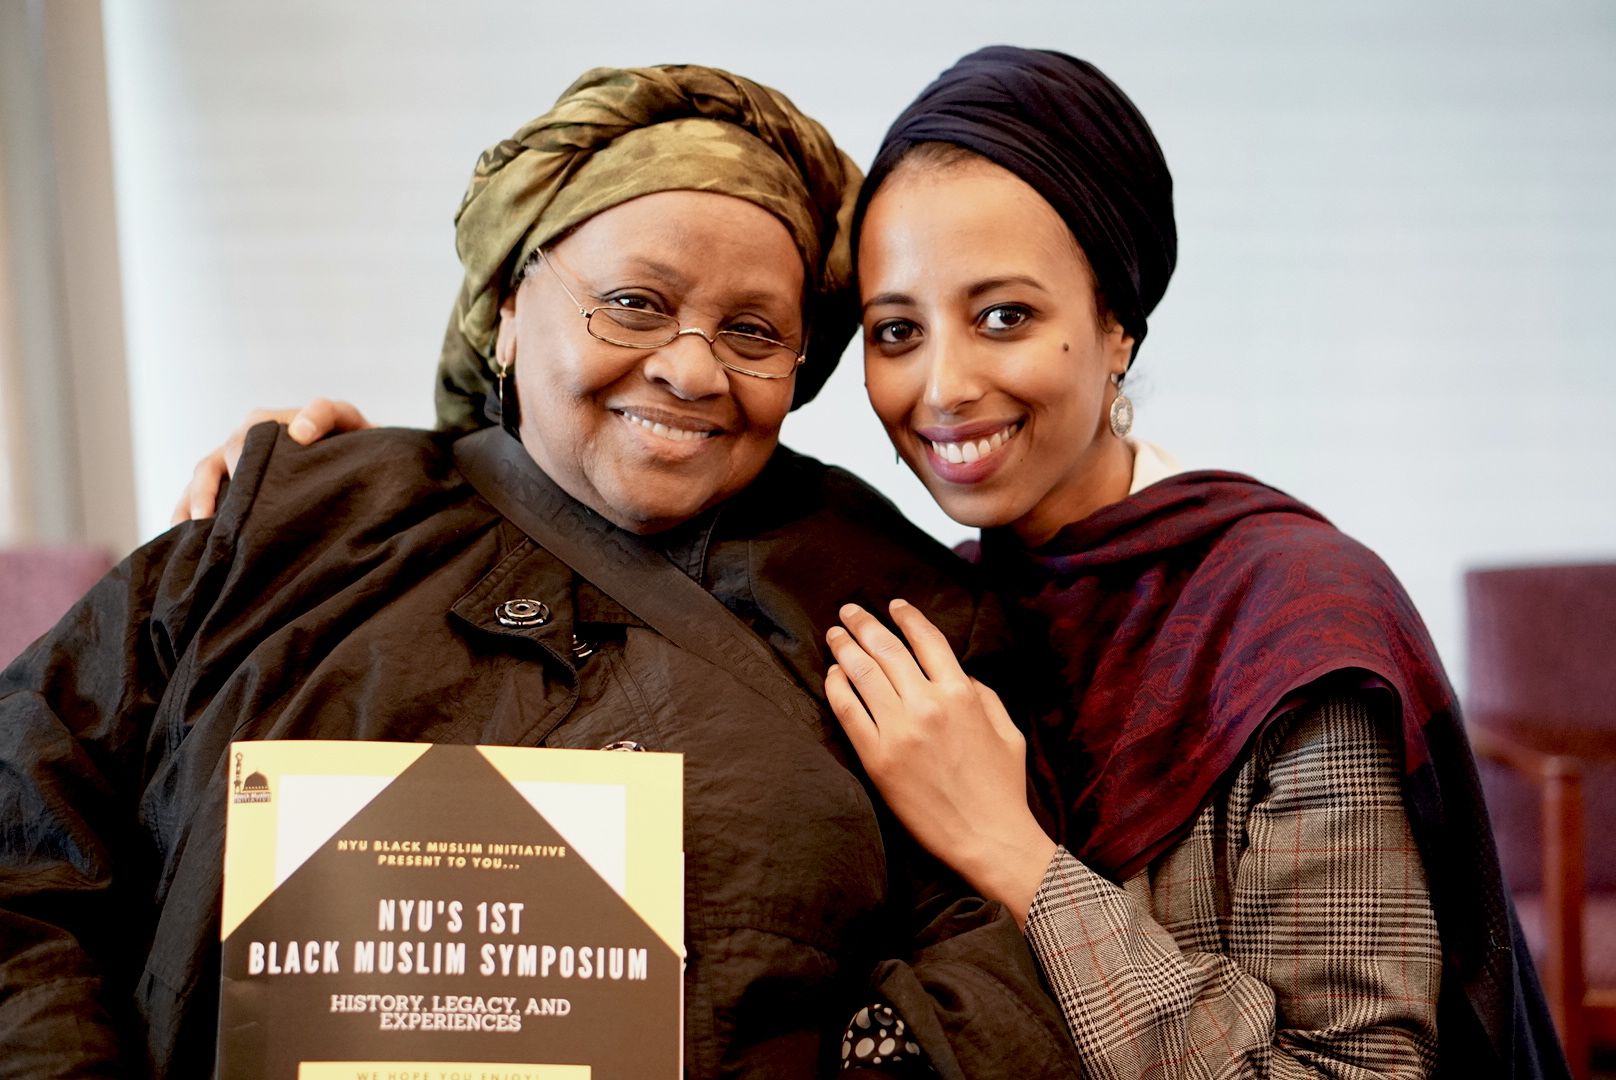 Sister Aisha al-Adawiya and Ifrah Magan